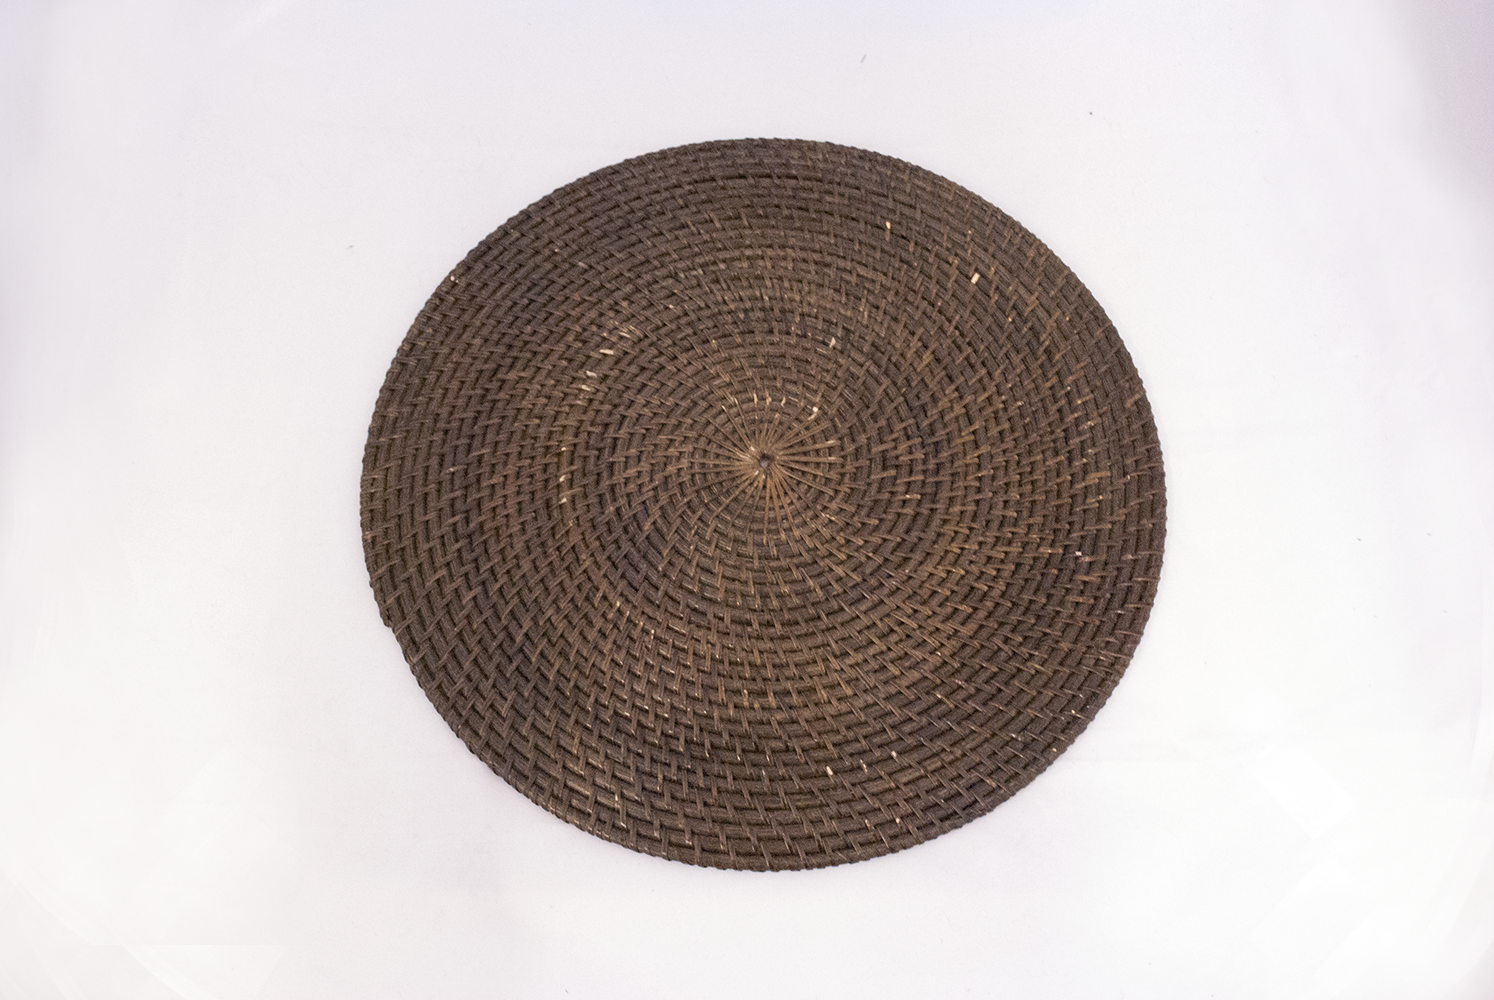 rattan charger (large)   Quantity: 25  Price: $4.50